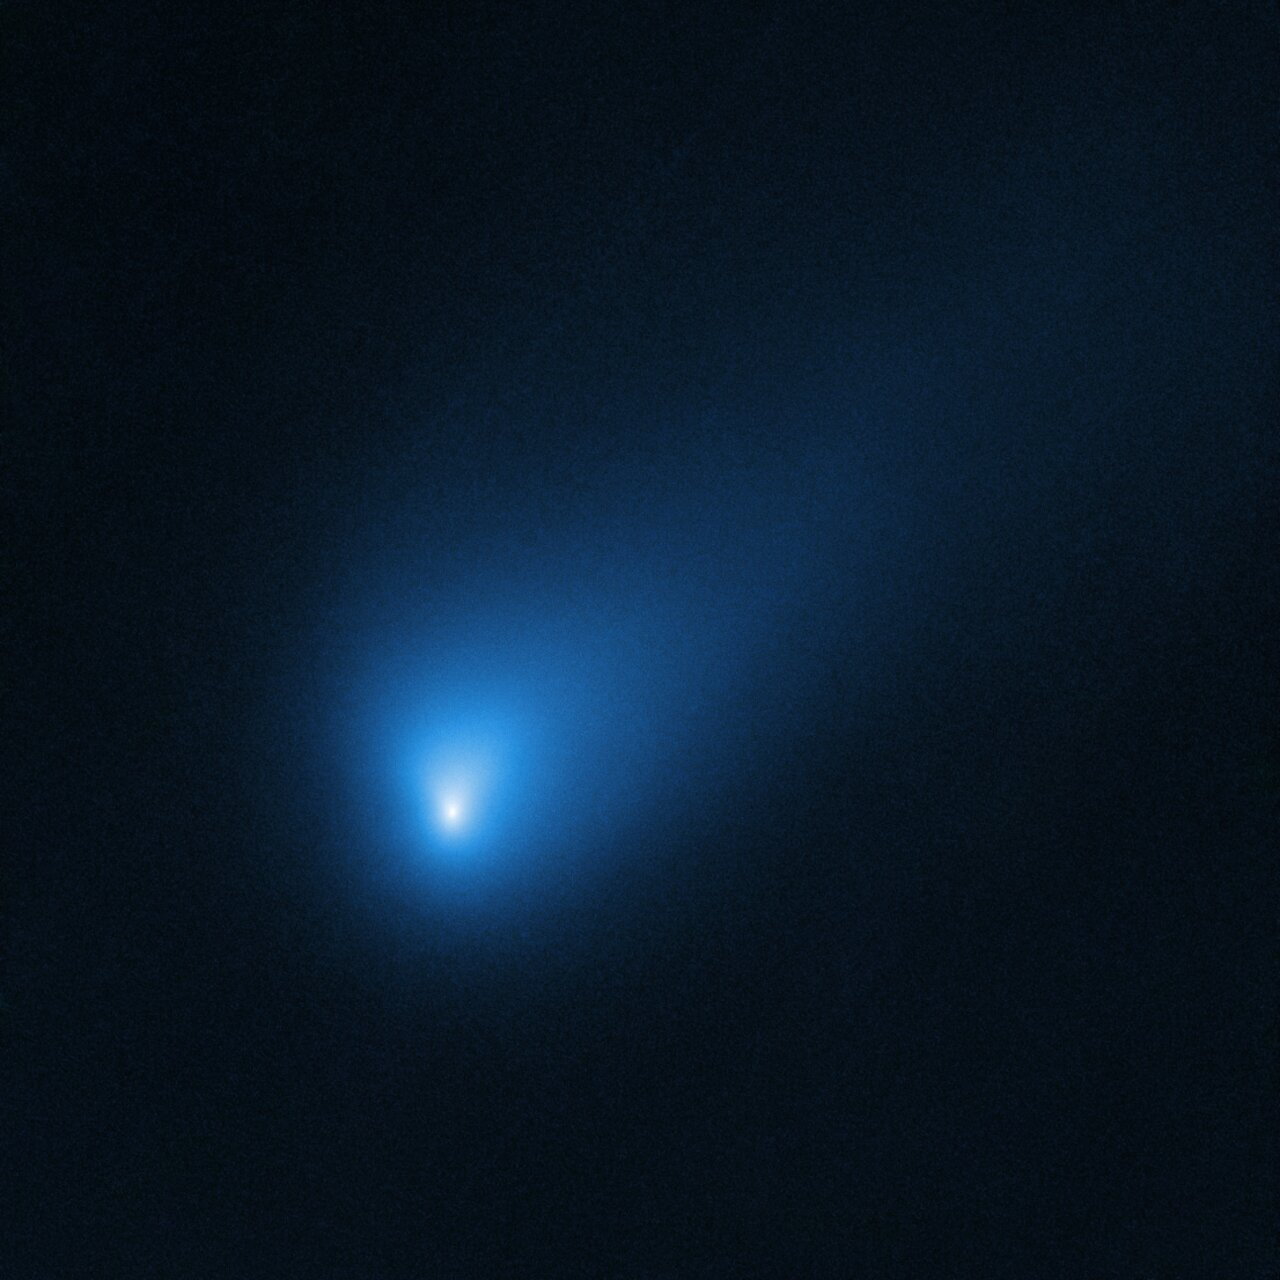 Hubble's Observation of Comet 2I/Borisov in October 2019